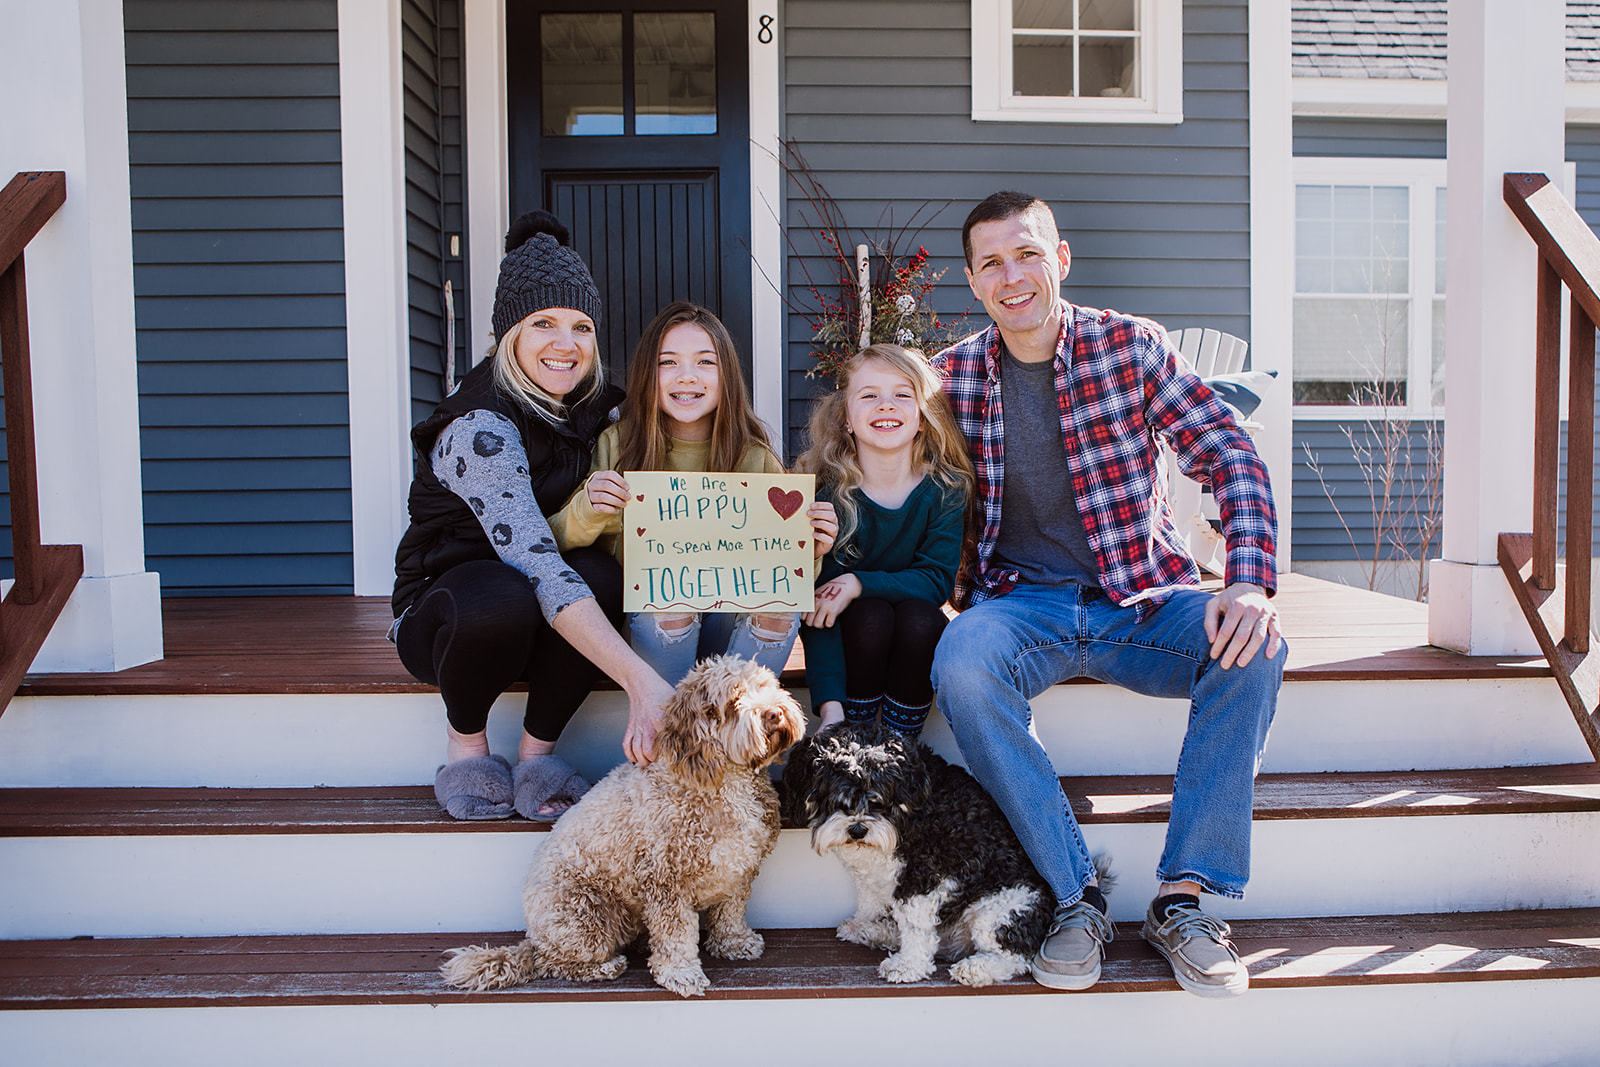 Seacoast Family photography - family on their front steps